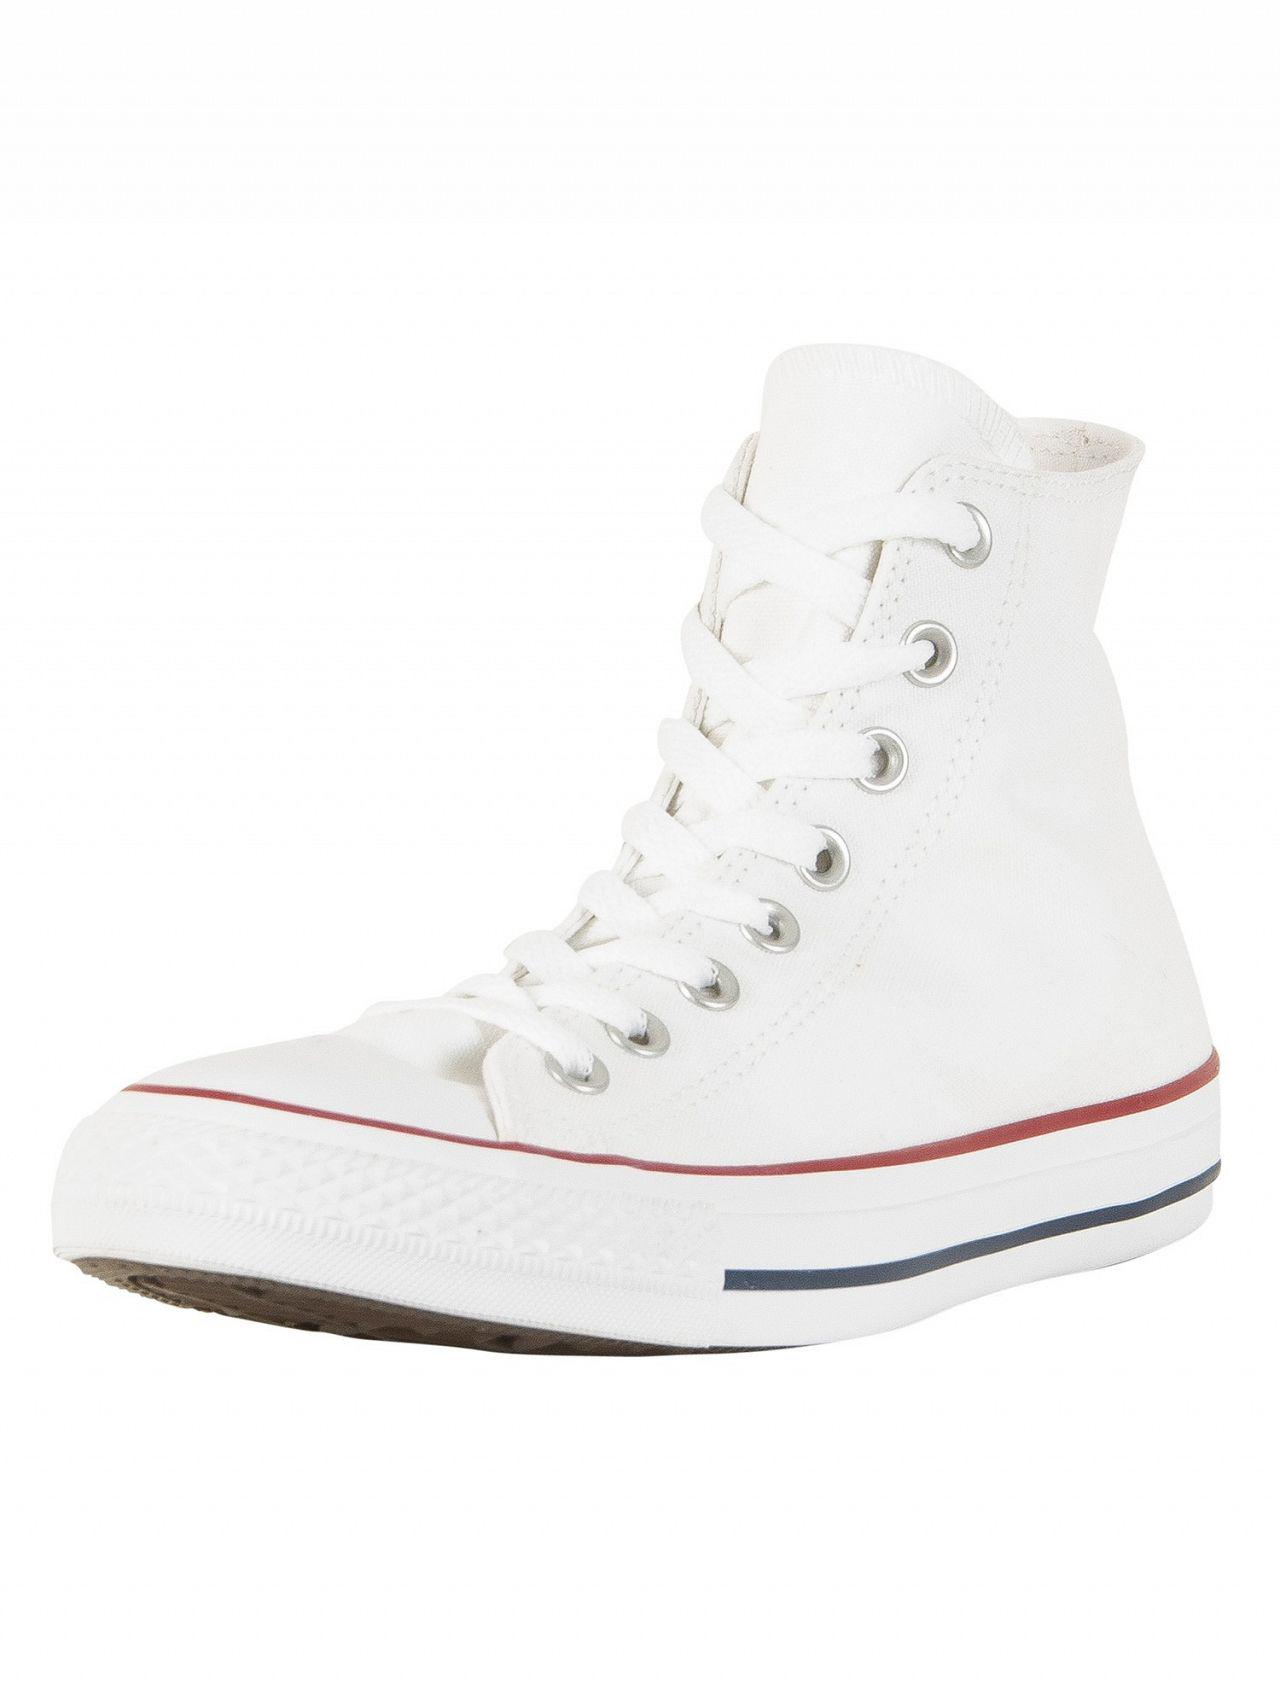 Lyst Optical For In Hi Converse Trainers Star Men White All NkOX8nwP0